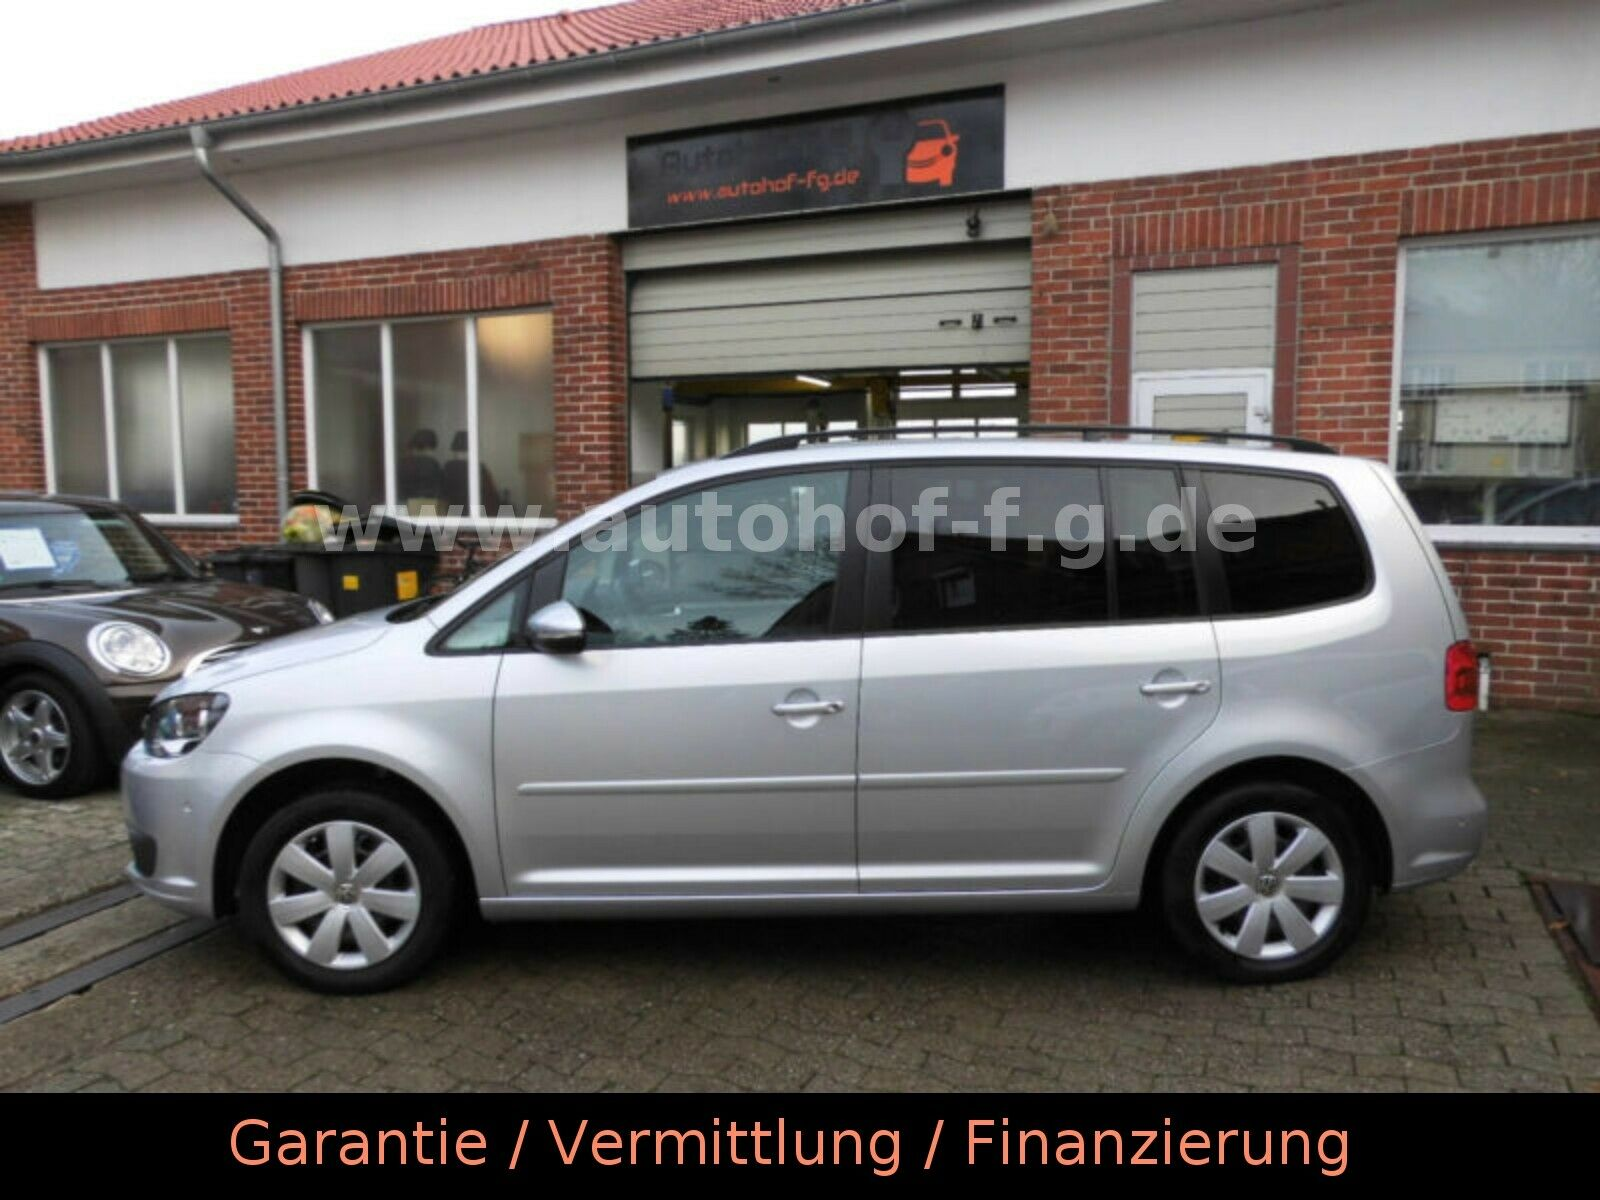 VW Touran Comfortline BMT*DSG*NAVI*APS*1HD*TOP*